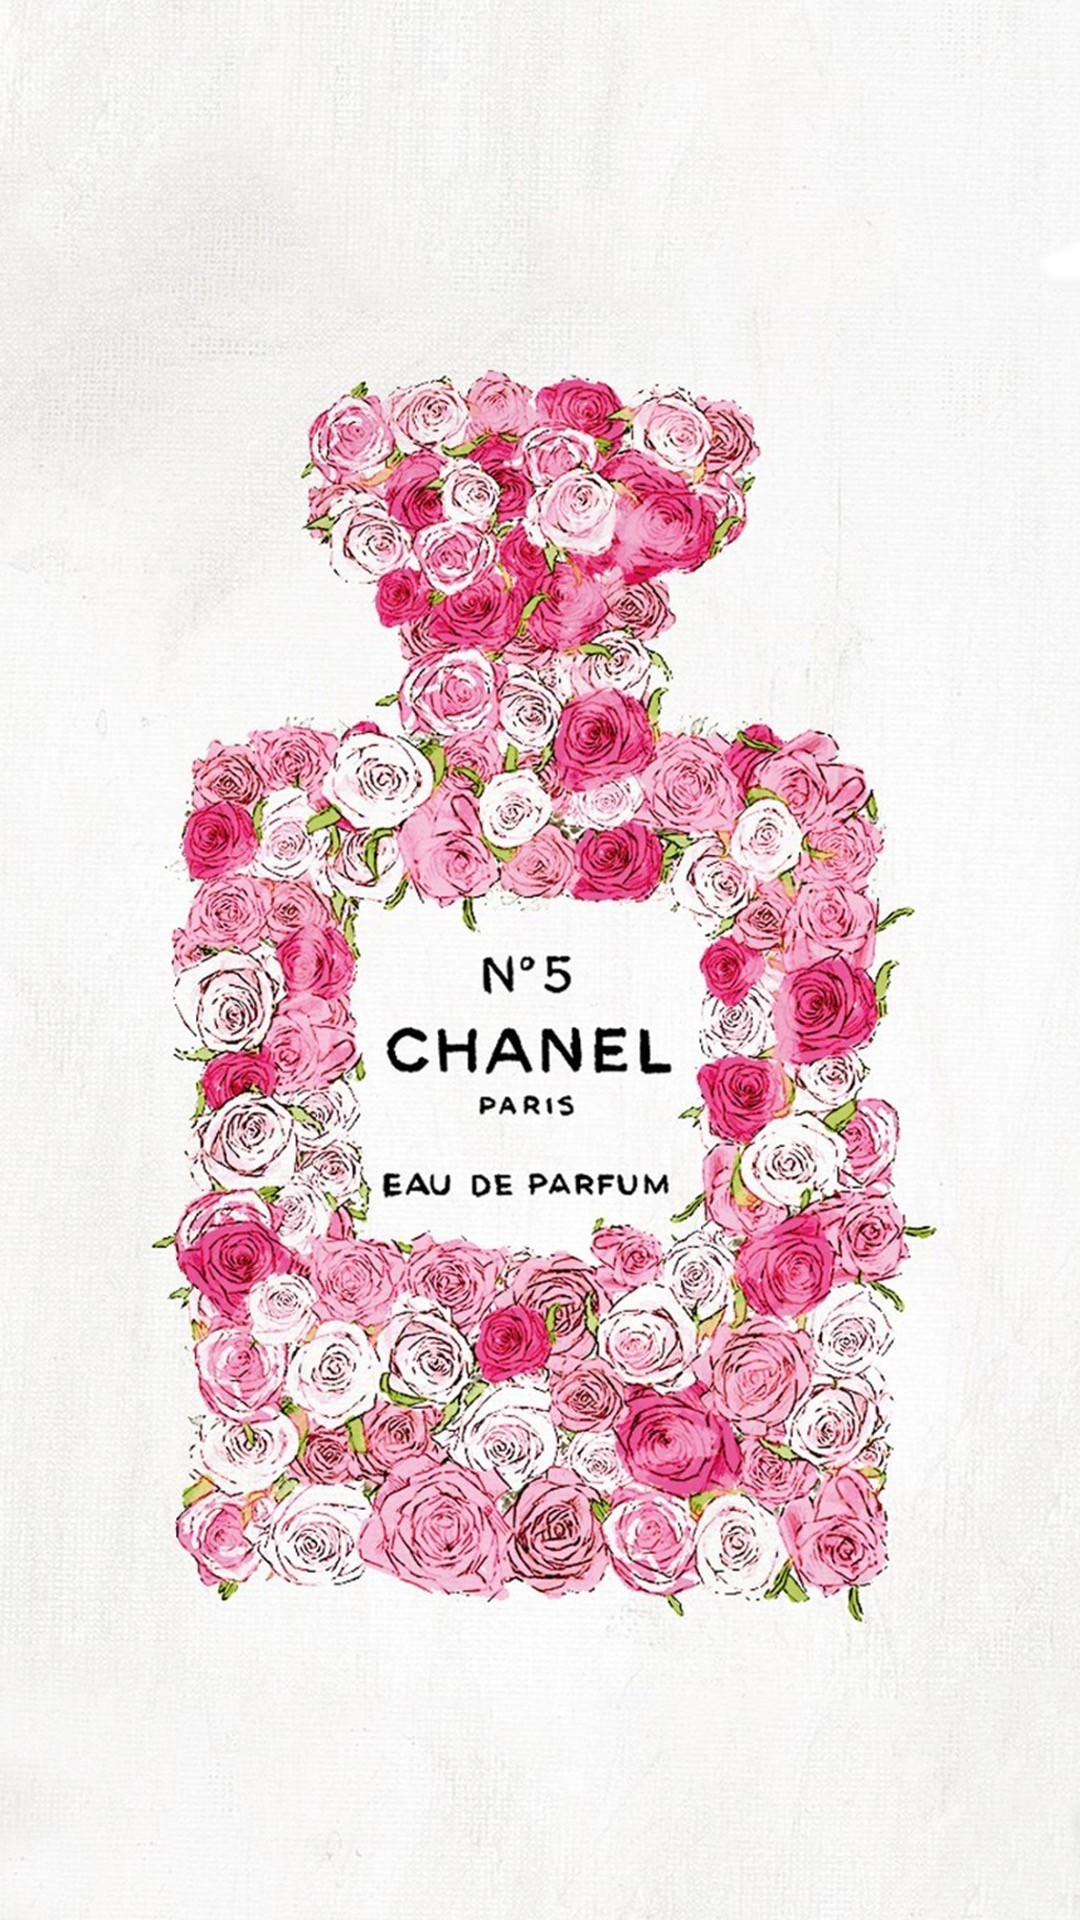 Res: 1080x1920, Chanel Logo Wallpaper Beautiful Chanel N°5 Chanel N5 Pinterest